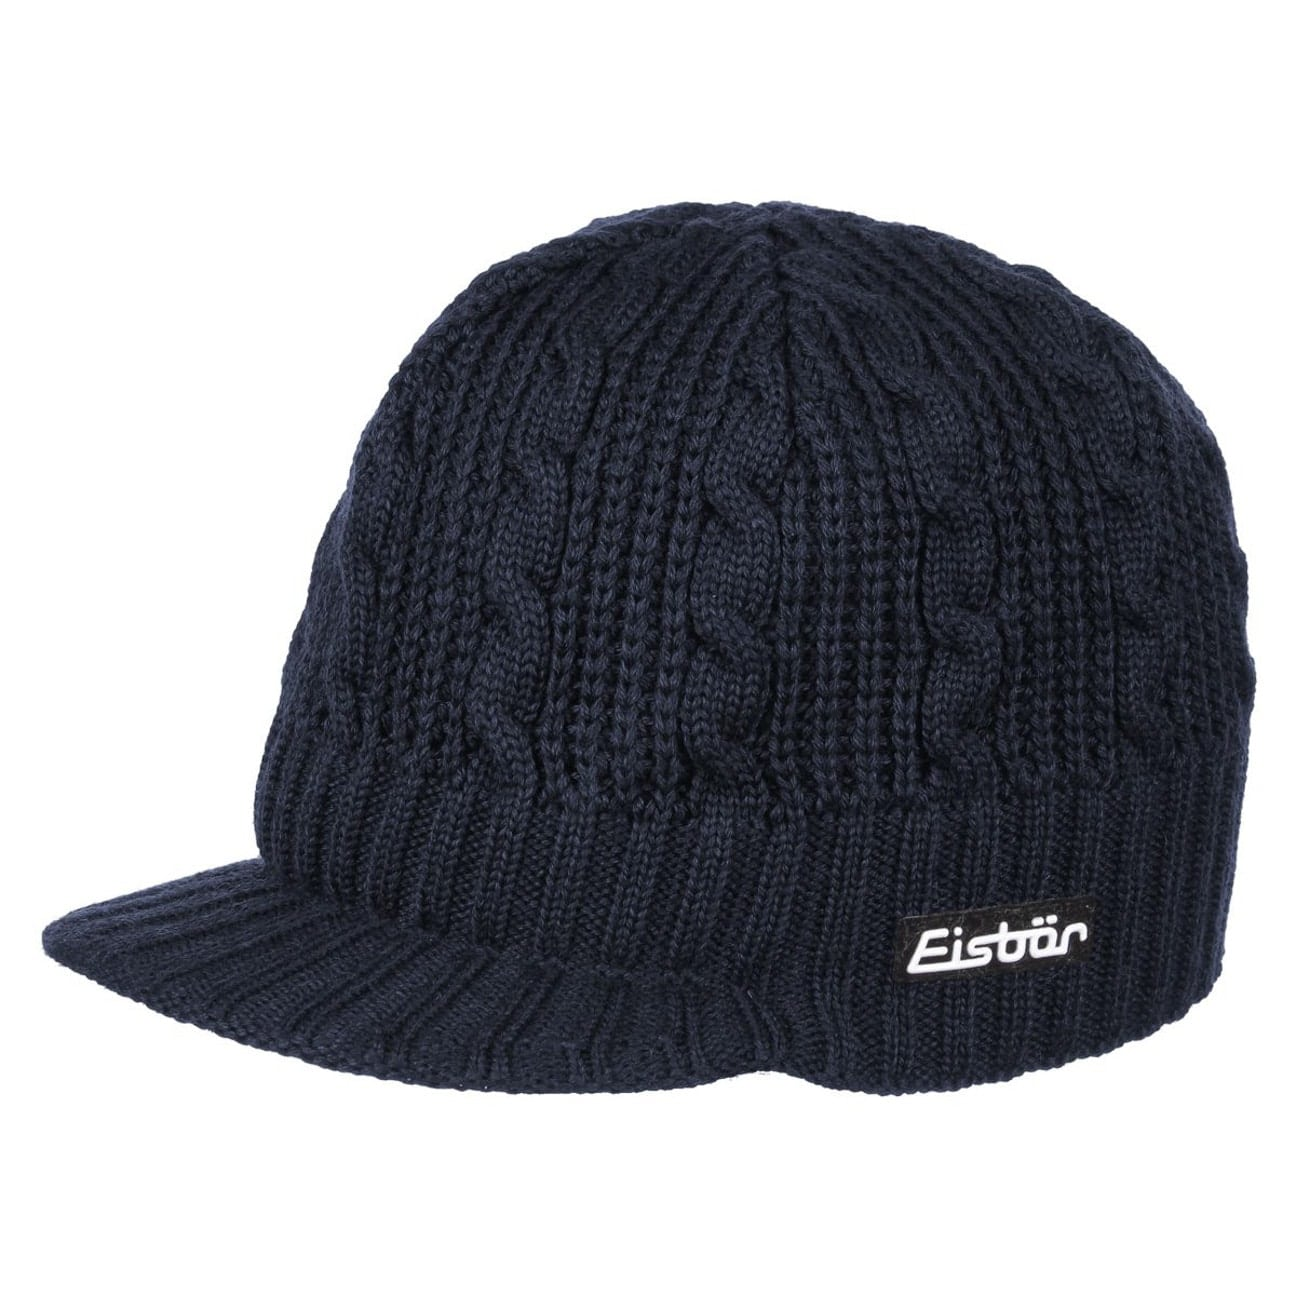 8ee220ec4b8 Agor Peaked Pull On Hat by Eisbär